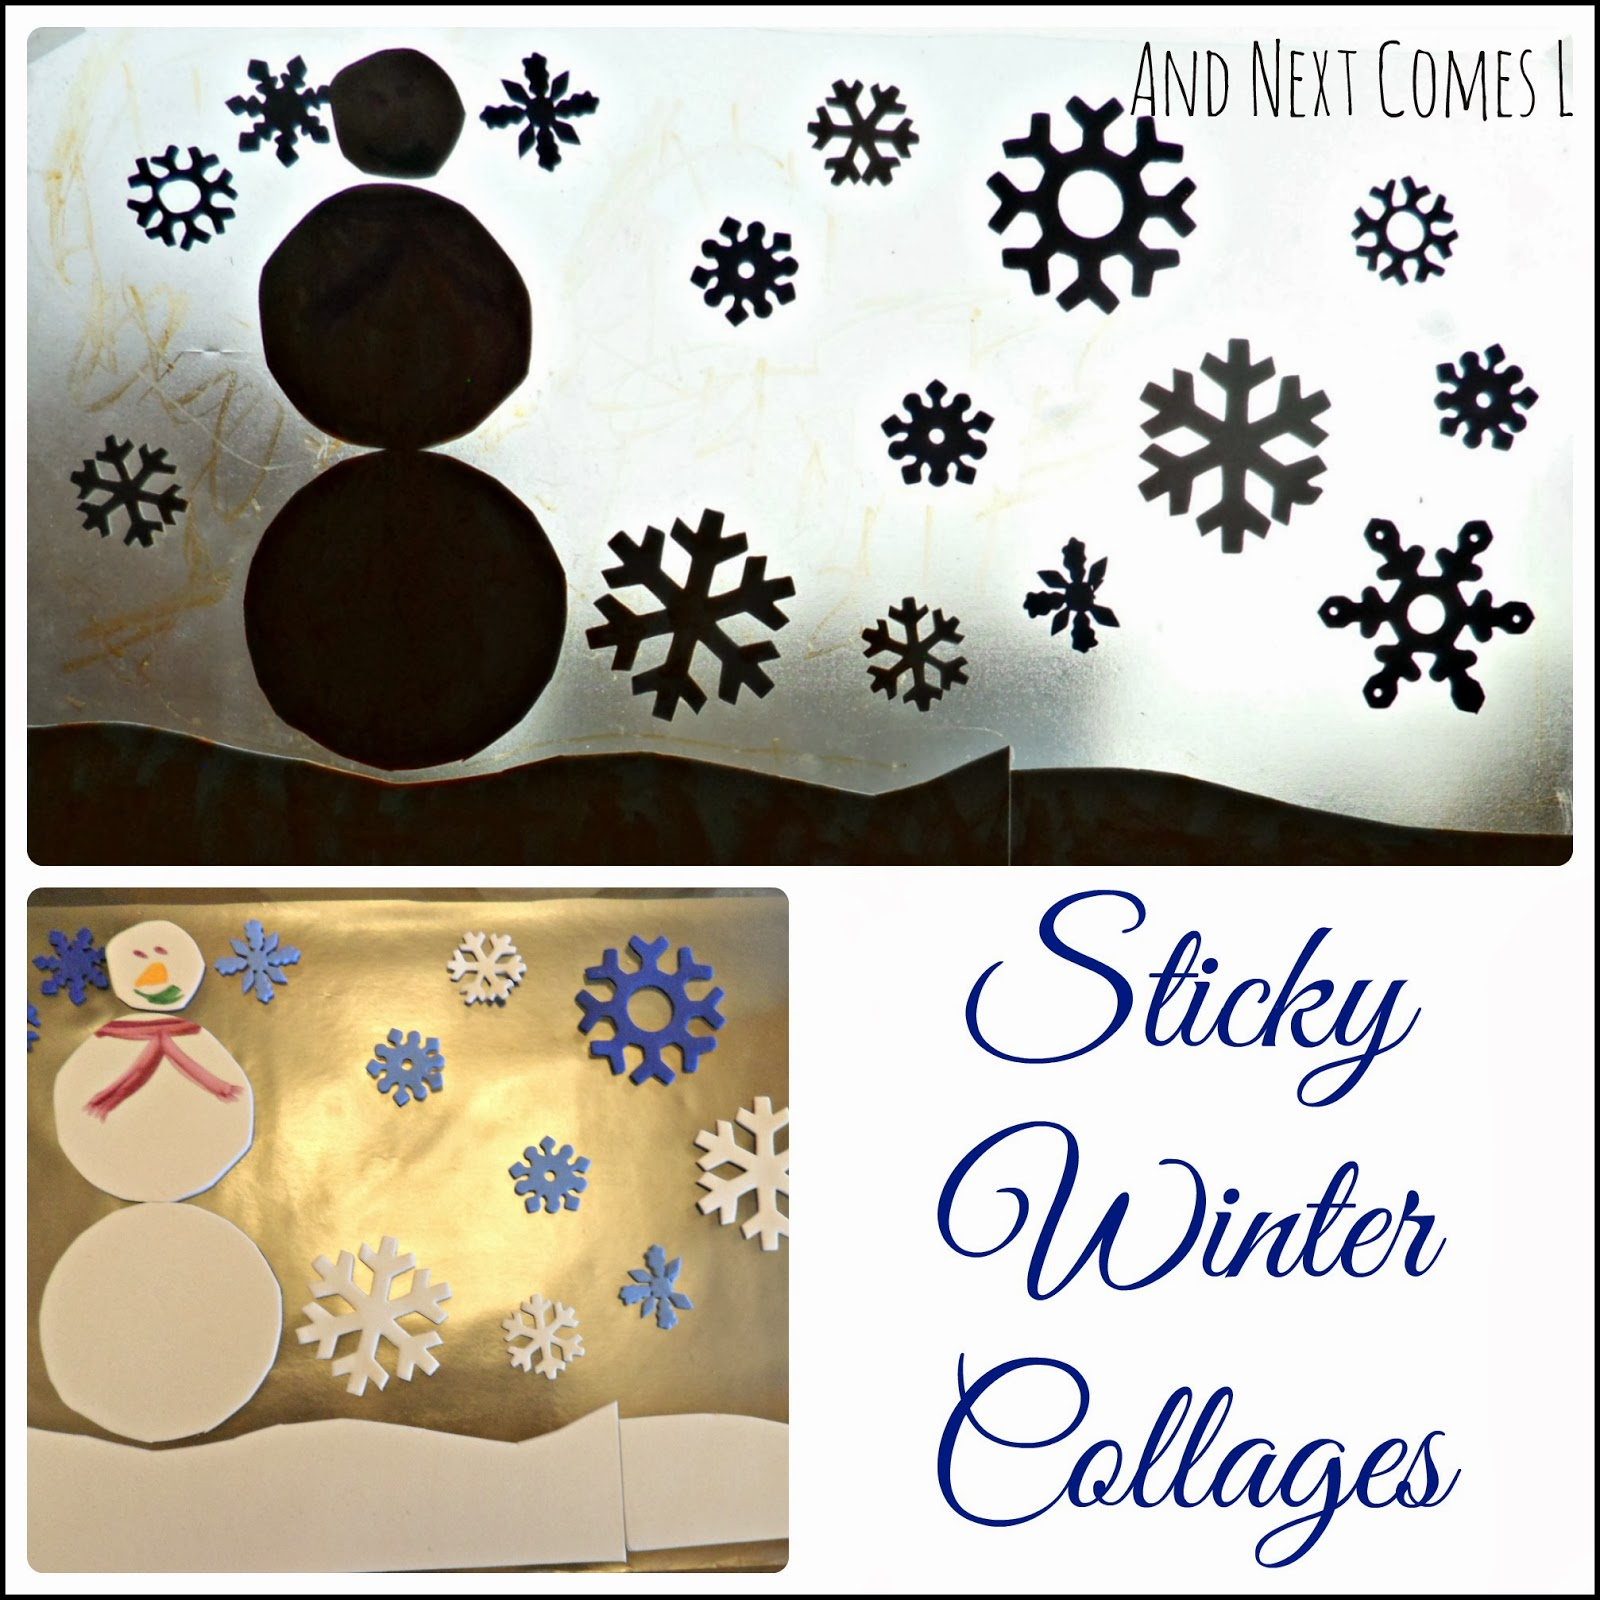 Sticky Winter Collages